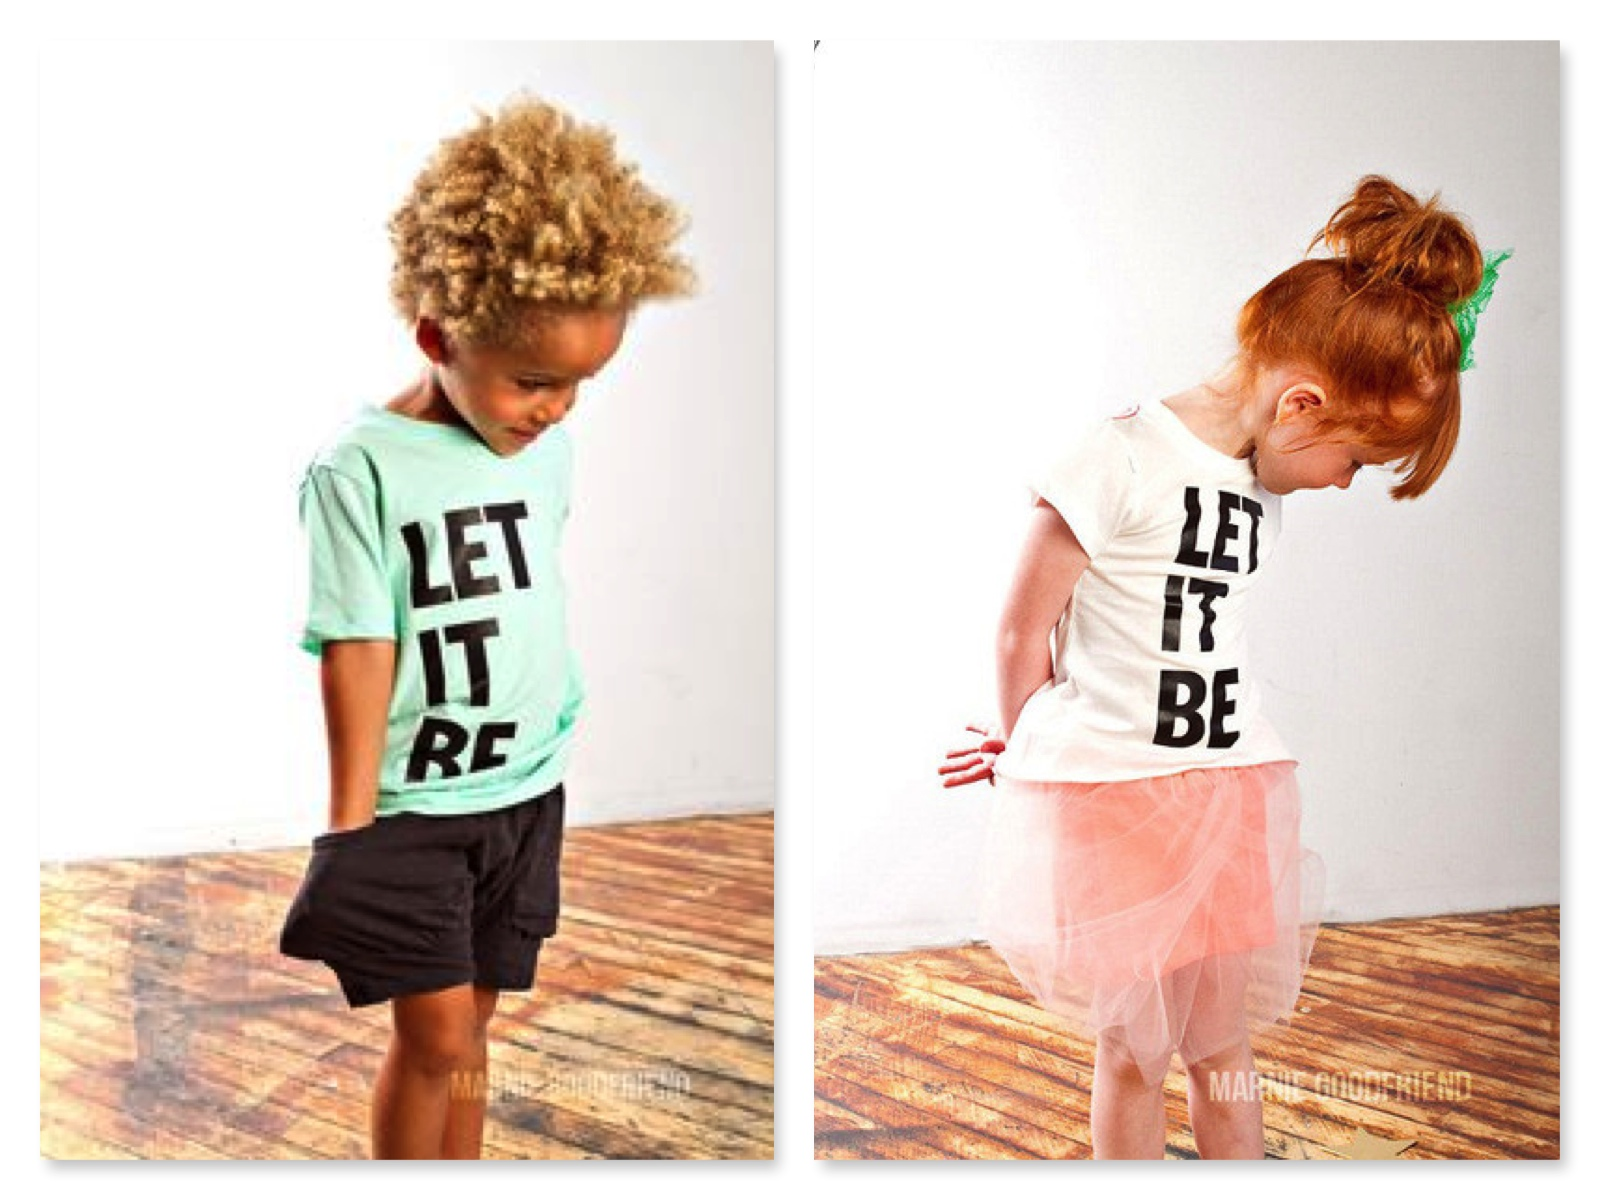 "Have your Little One Rock the Iconic Phrase ""Let It Be"" in this Statement Tee from  Joah Love .  Though the Boys Tee is just as Cool on a Boy or a Girl, Joah Love also has this Graphic on a Girls Tee Body, with a slight high, low, flowy-fit and neon pink graphic."